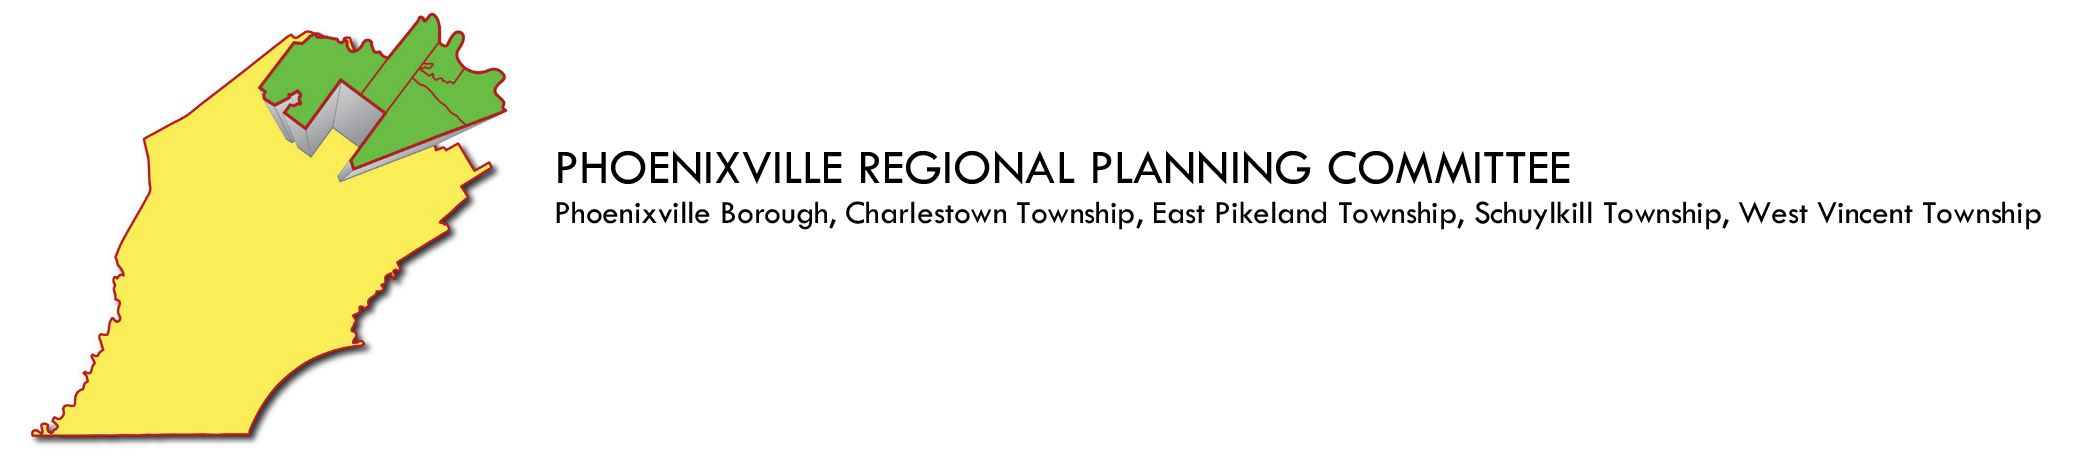 Phoenixville Regional Planning Committee - Phoenixville, Charlestown, East Pikeland Township, Schuyl